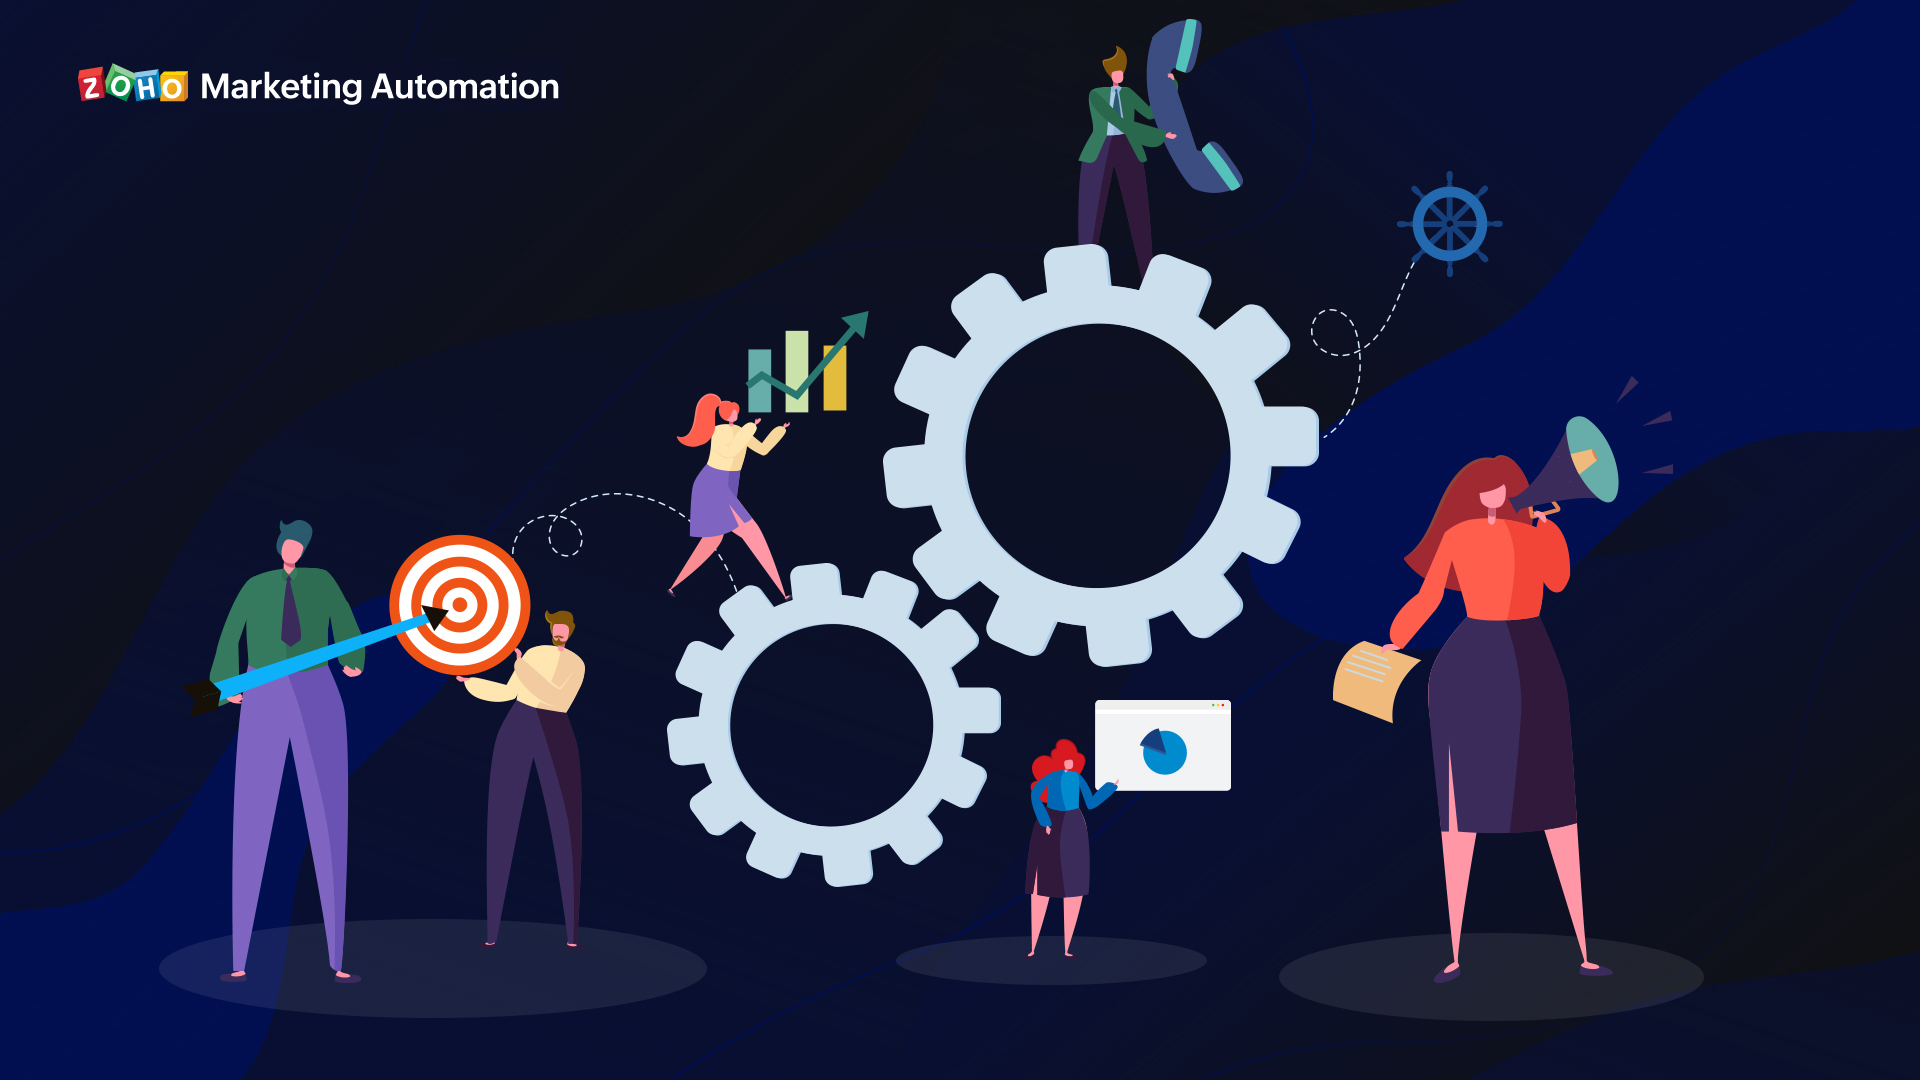 Align your sales and marketing teams with marketing automation